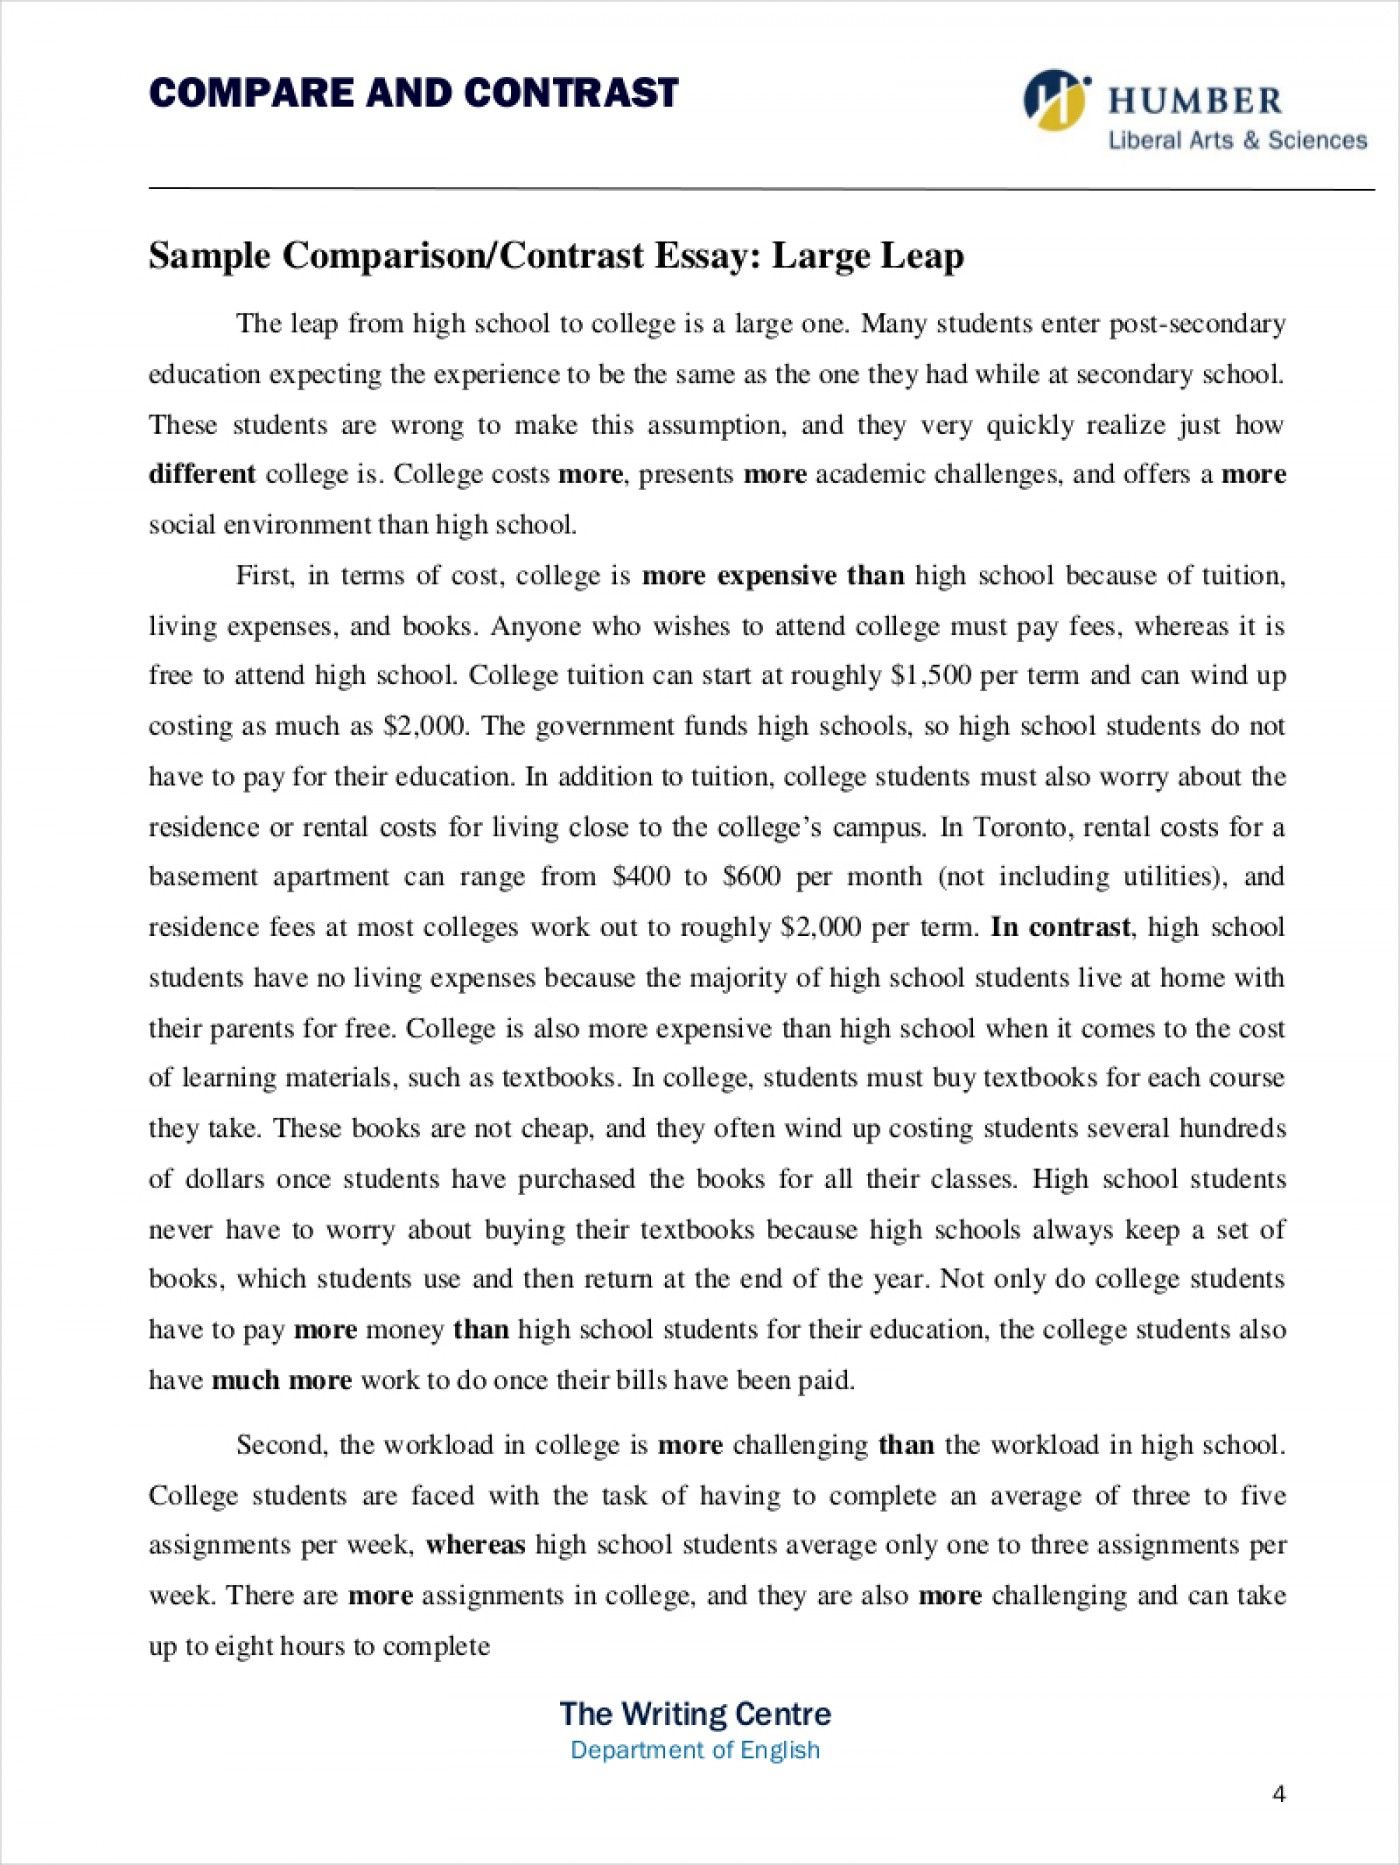 014 How To Write Compare And Contrast Essay Example Comparative Samples Free Pdf Format Download Throughout Examples Comparison Thesis Coles Thecolossus Co Within Ex Outstanding A Block Conclusion Paragraph For 1400